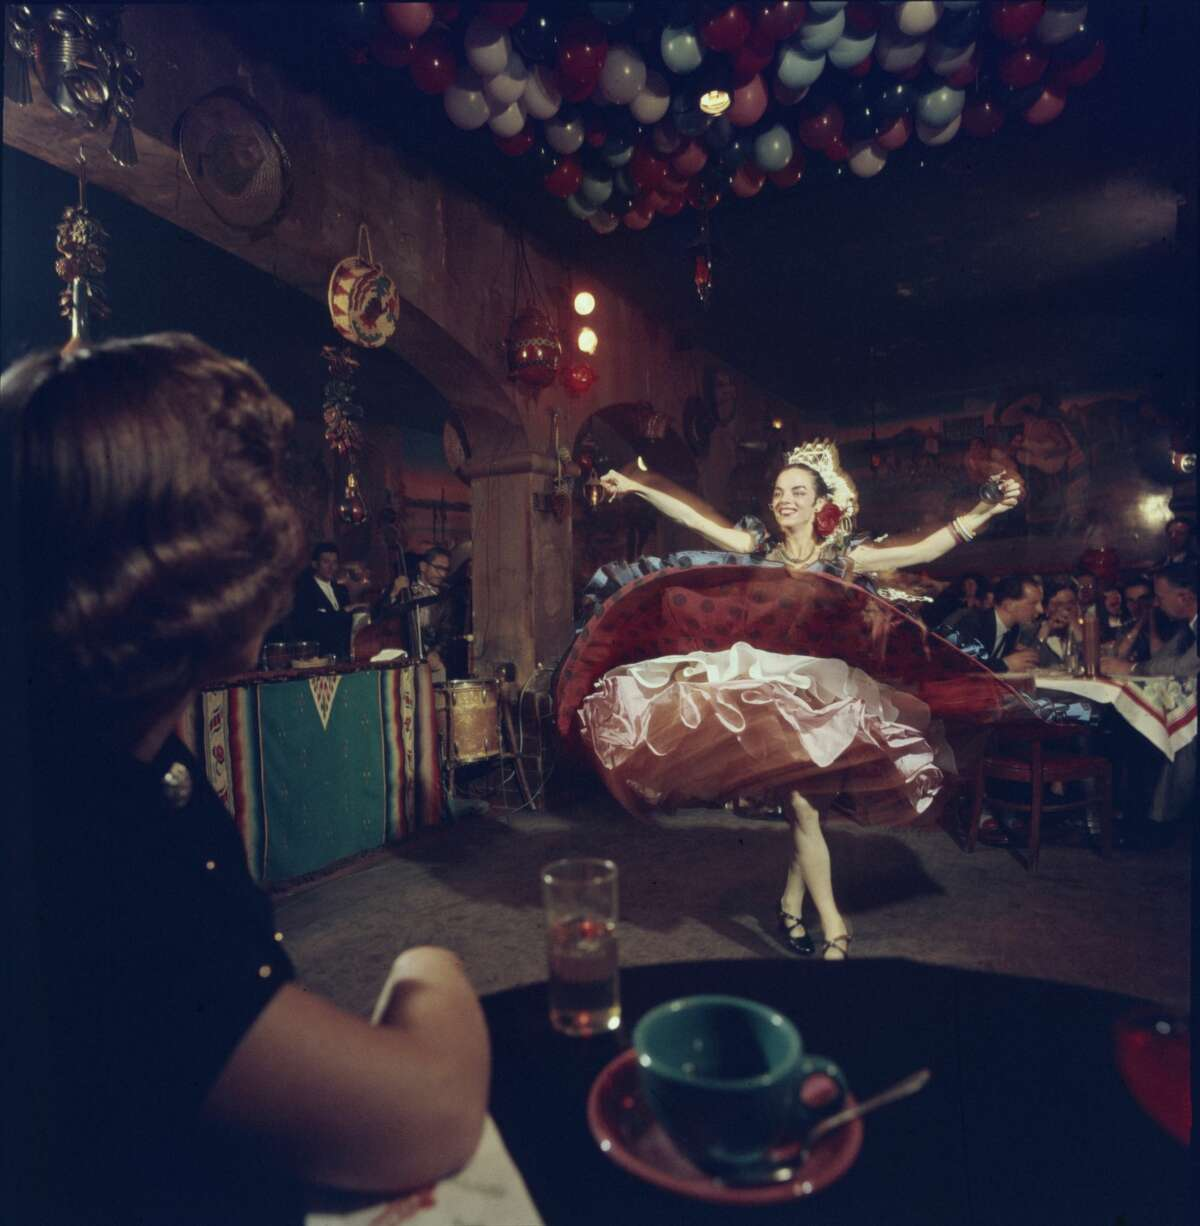 A dancer plays castanets as she twirls her polka-dot skirt and performs a version of a Spanish folk dance for patrons at the Sinaloa Club, San Francisco, California, 1956. (Photo by Nat Farbman/The LIFE Picture Collection/Getty Images)